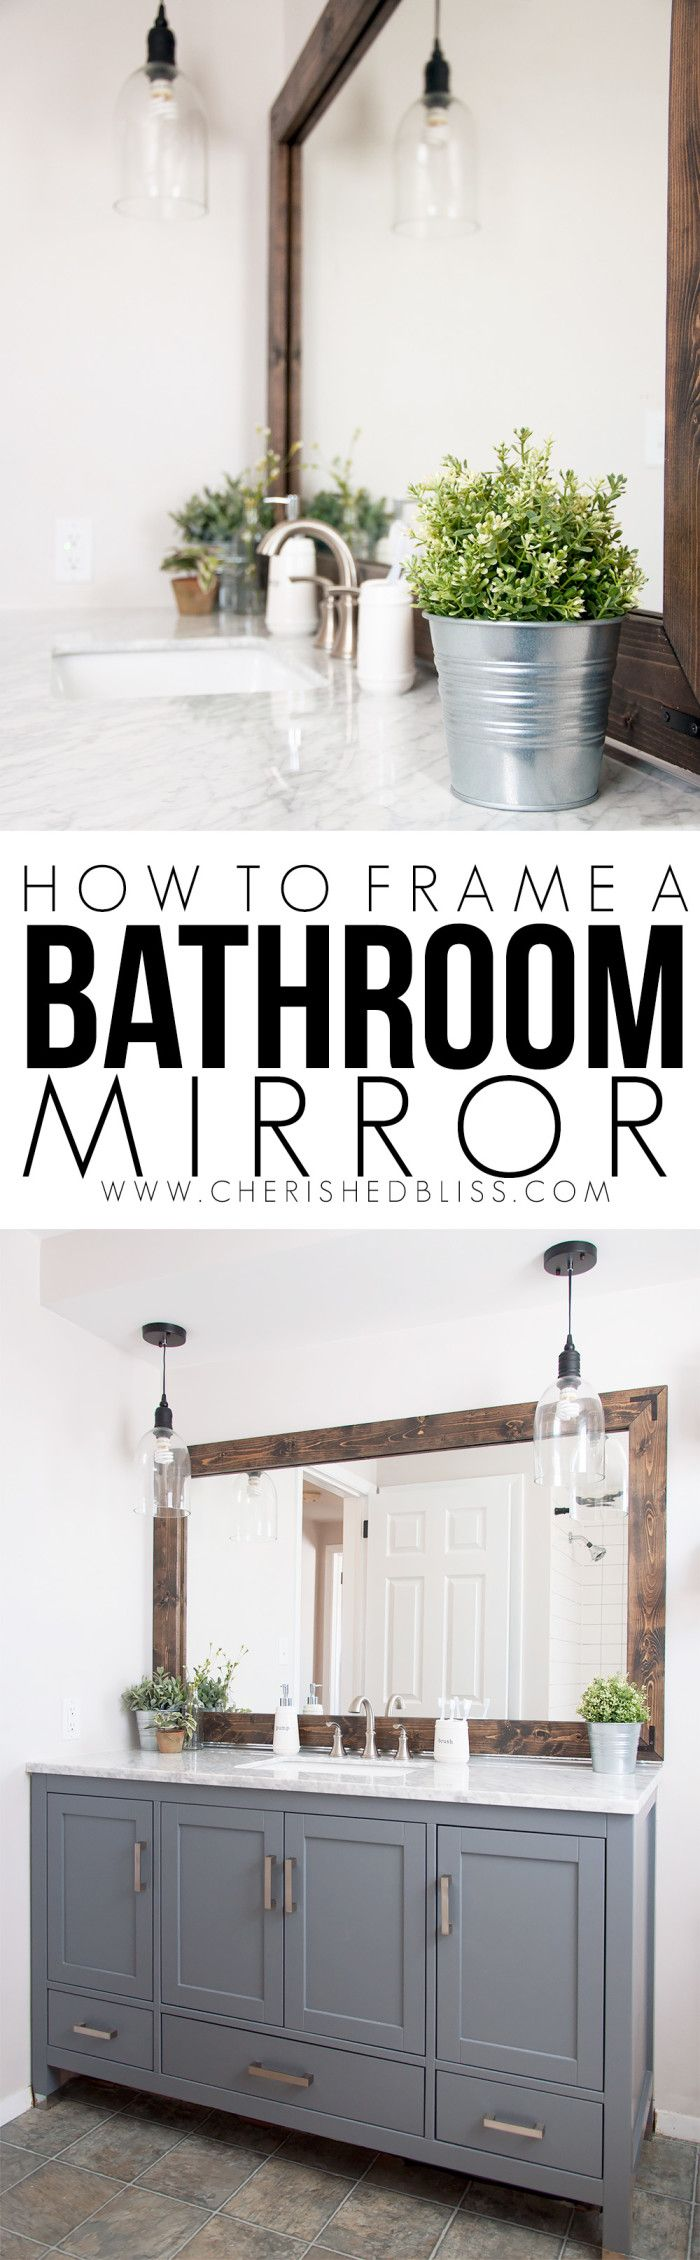 Bathroom mirror decorating ideas - How To Frame A Bathroom Mirror